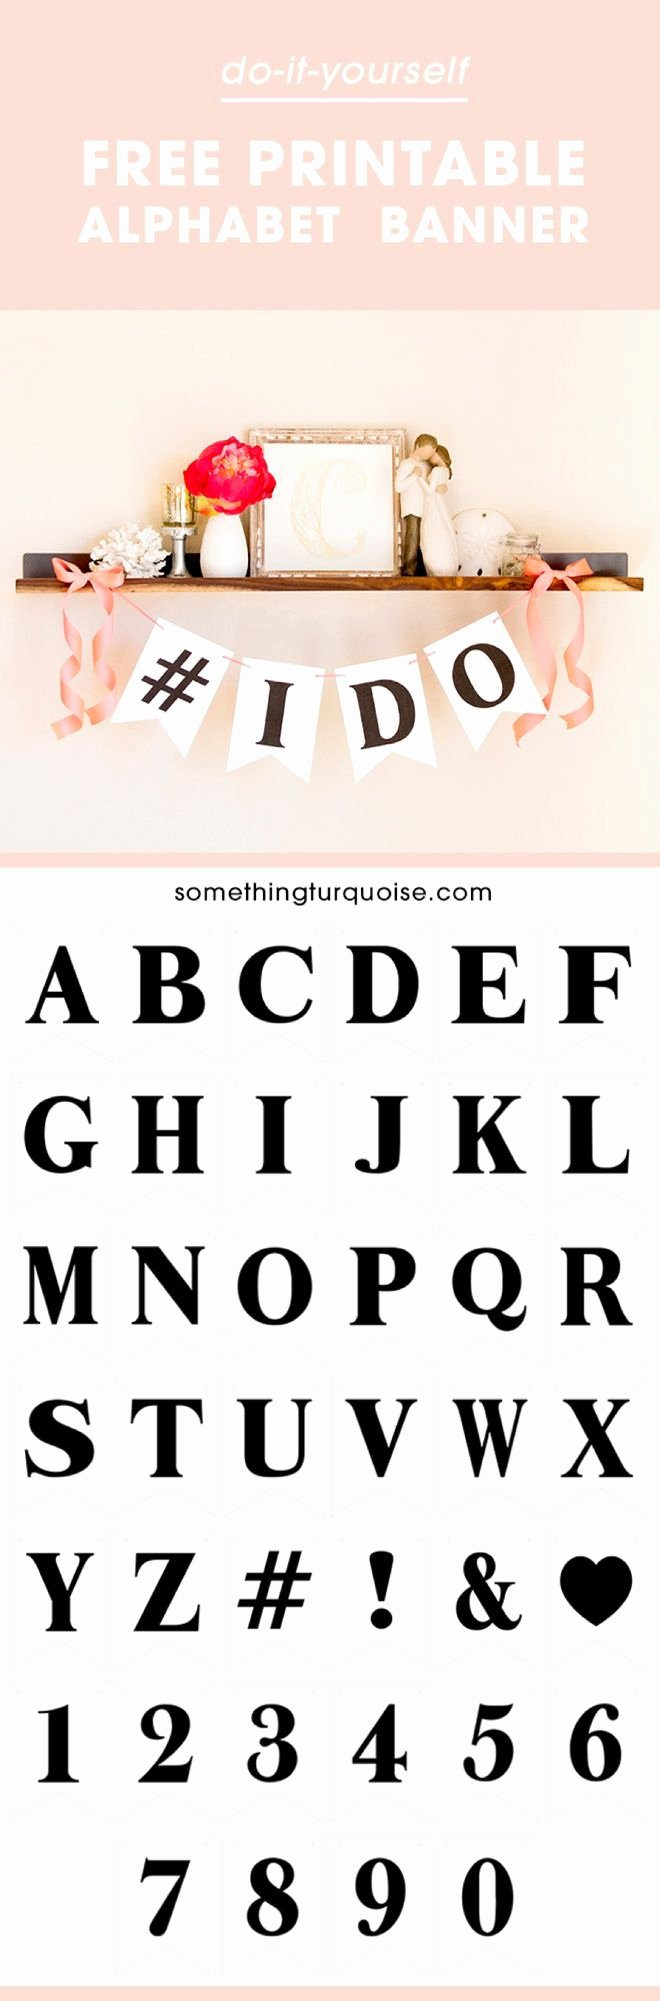 Letter Template for Banners Unique Best 25 Printable Banner Letters Ideas On Pinterest